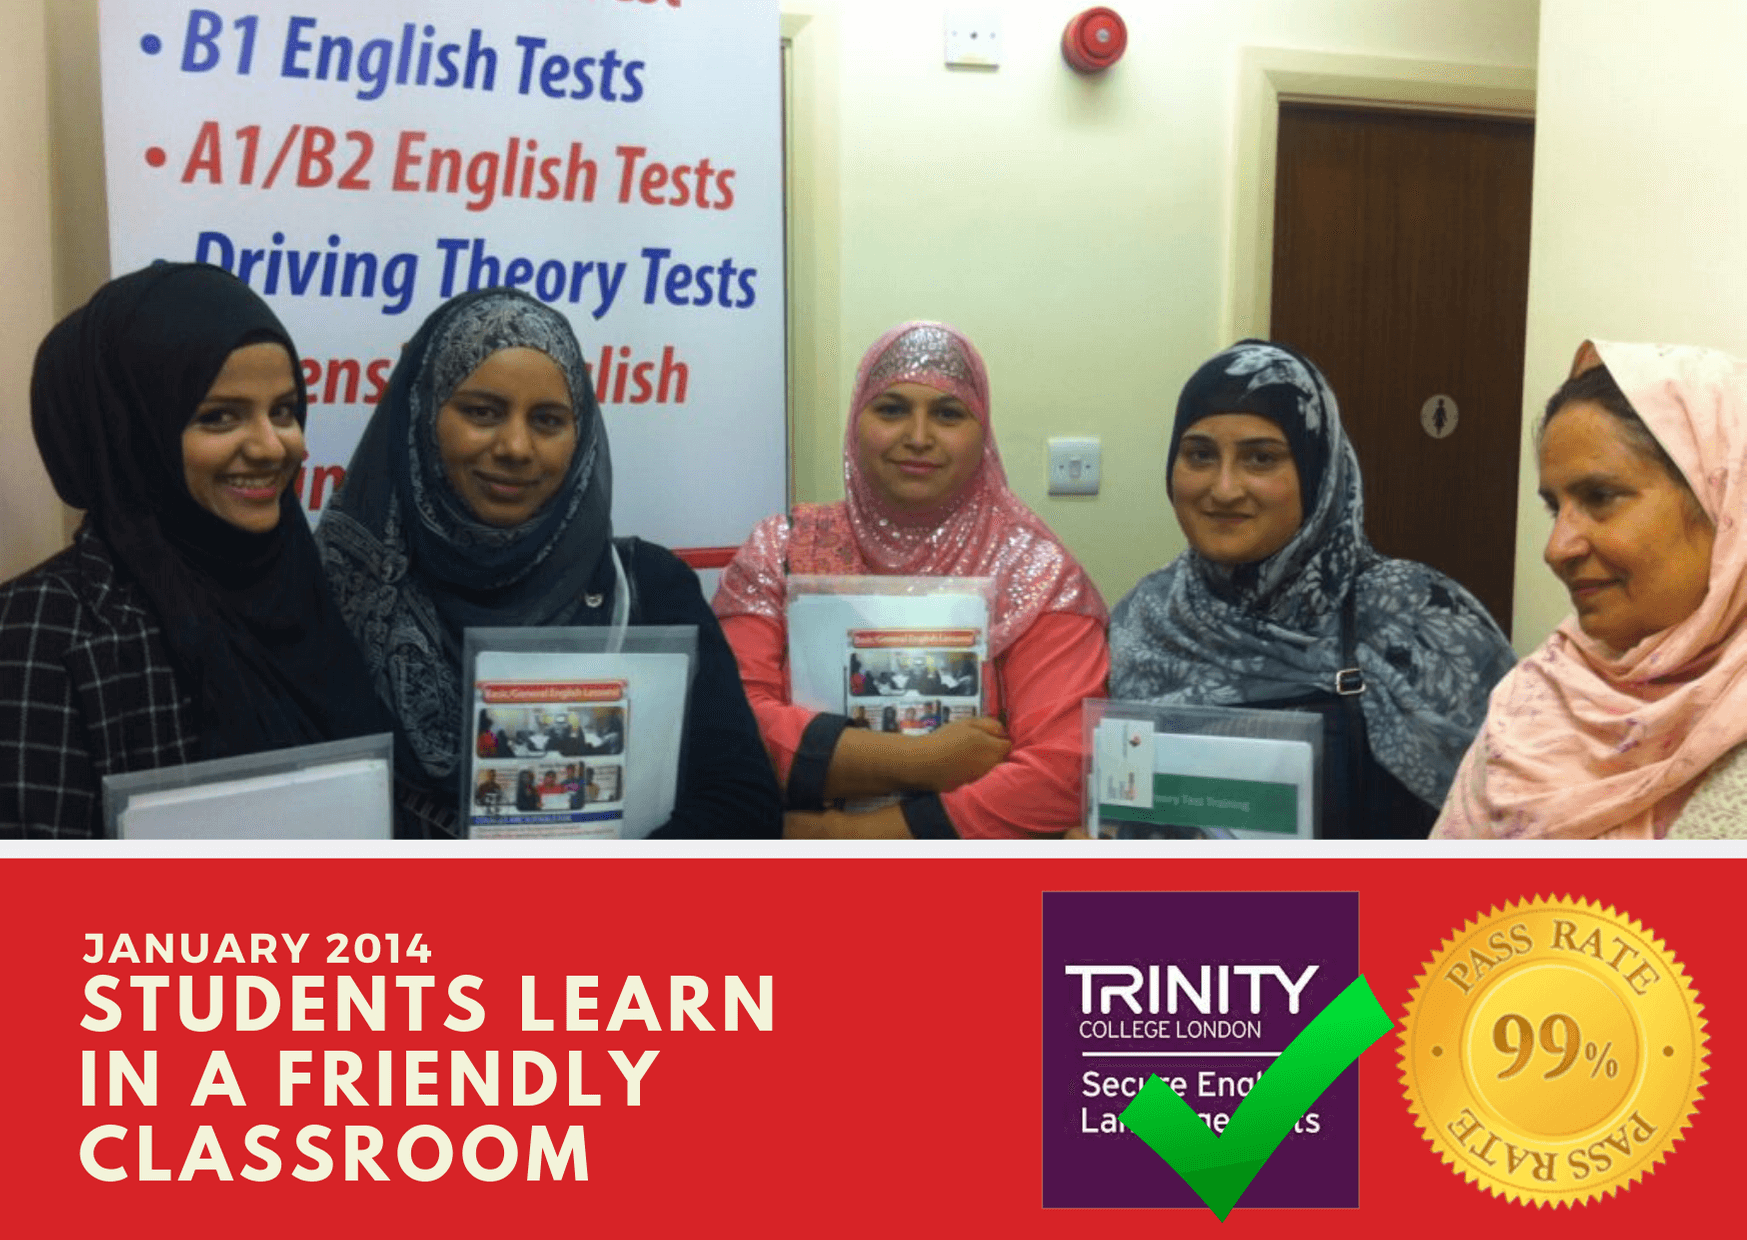 B1 English test training with our female students